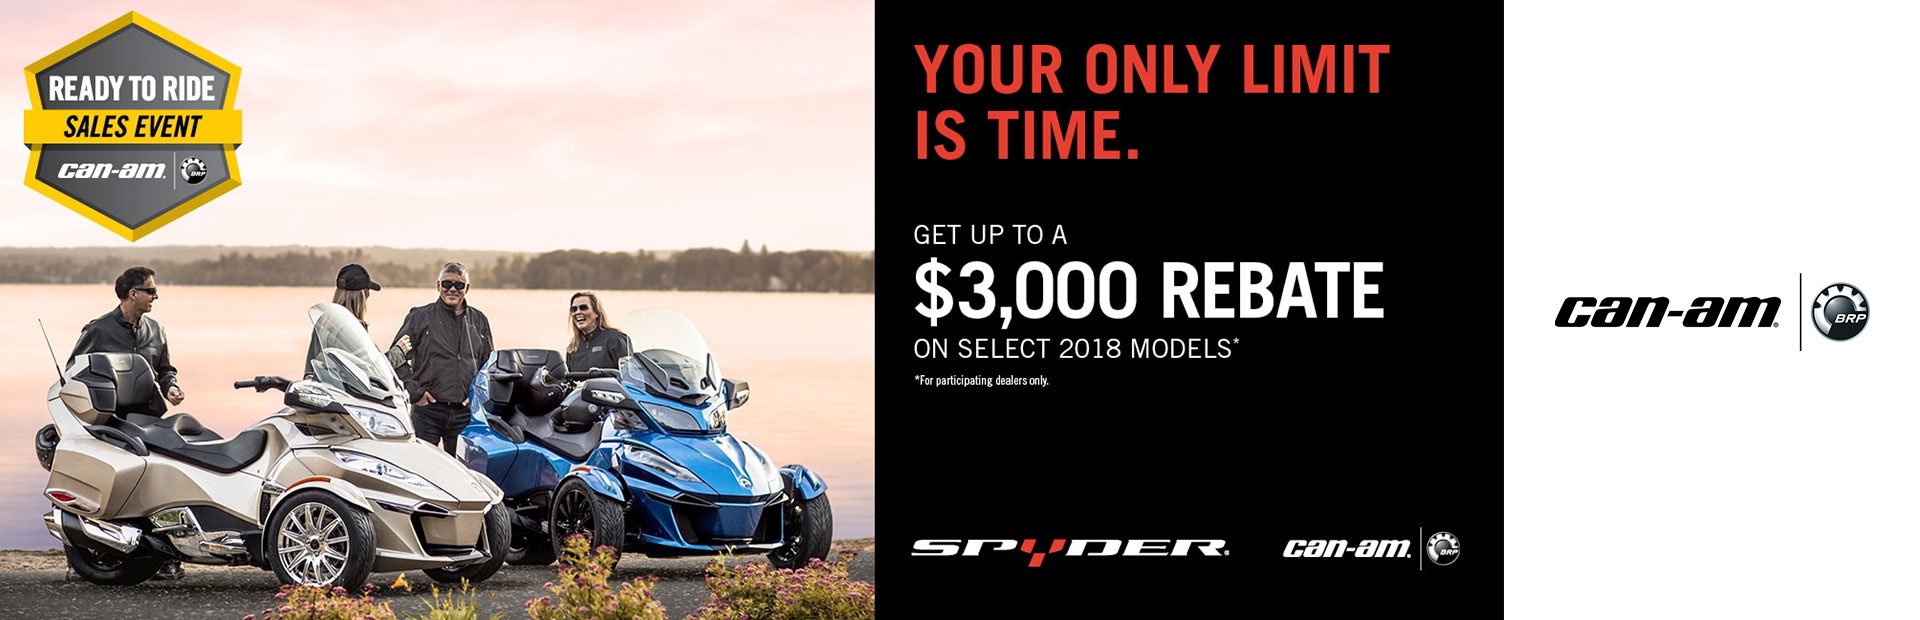 Can-Am: Ready to Ride Sales Event (Spyder) - 1.9% for 60mo